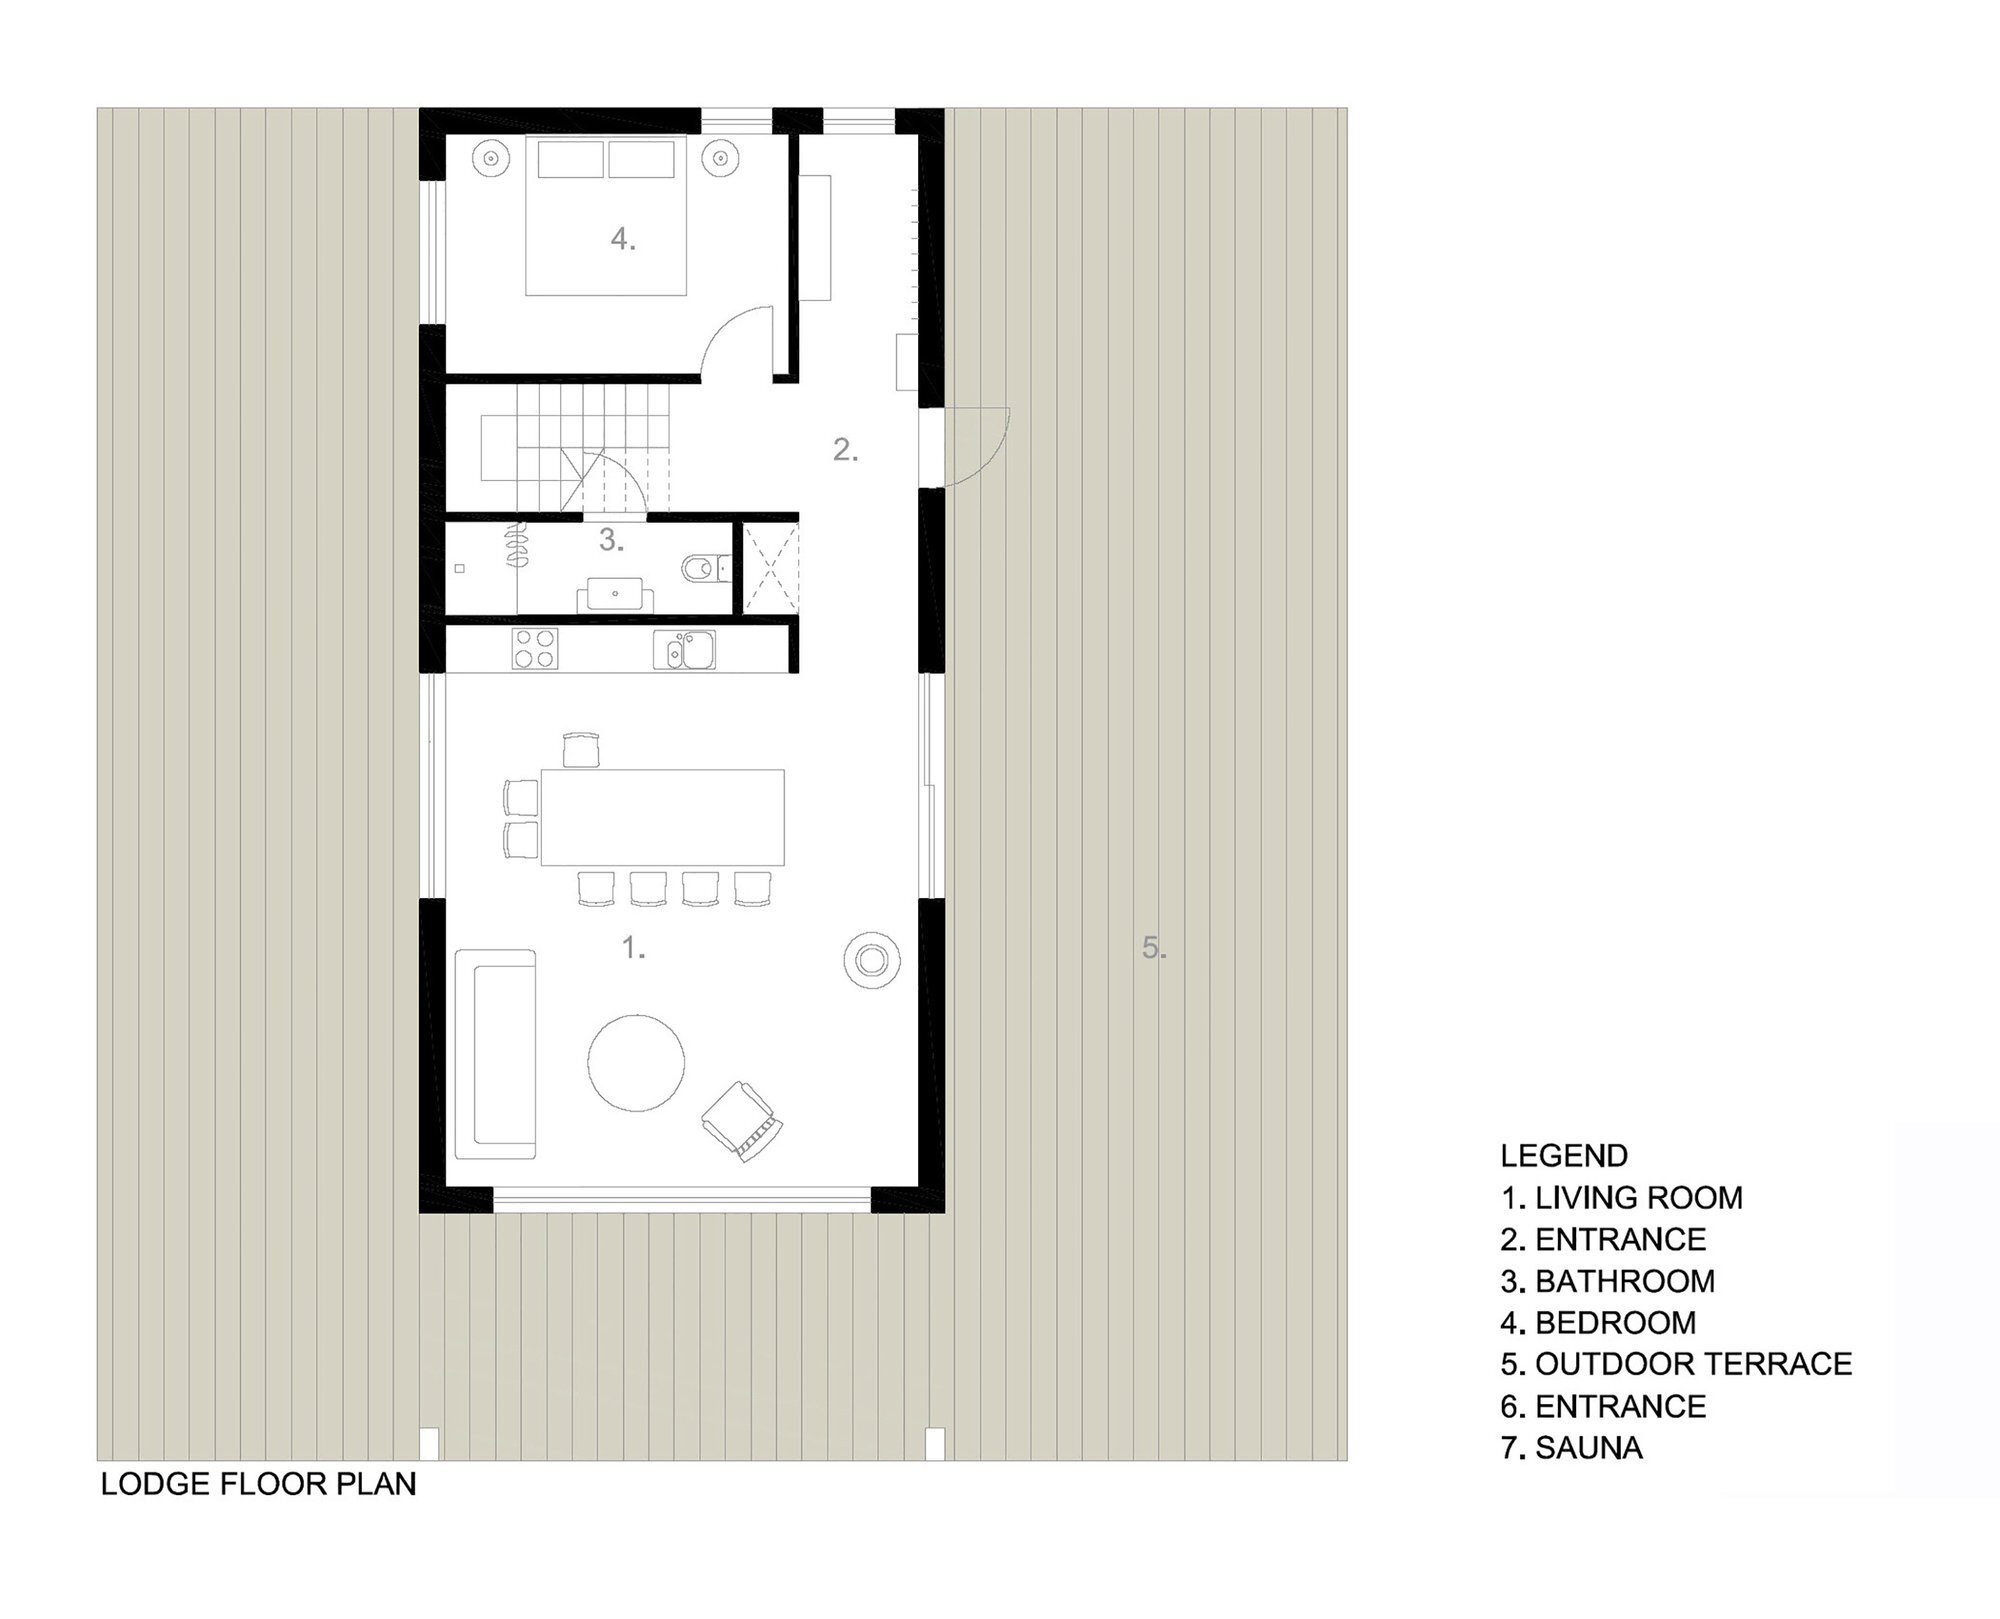 Lithuanian Hunting House - Devyni architektai - Lithuania - Floor Plan - Humble Homes